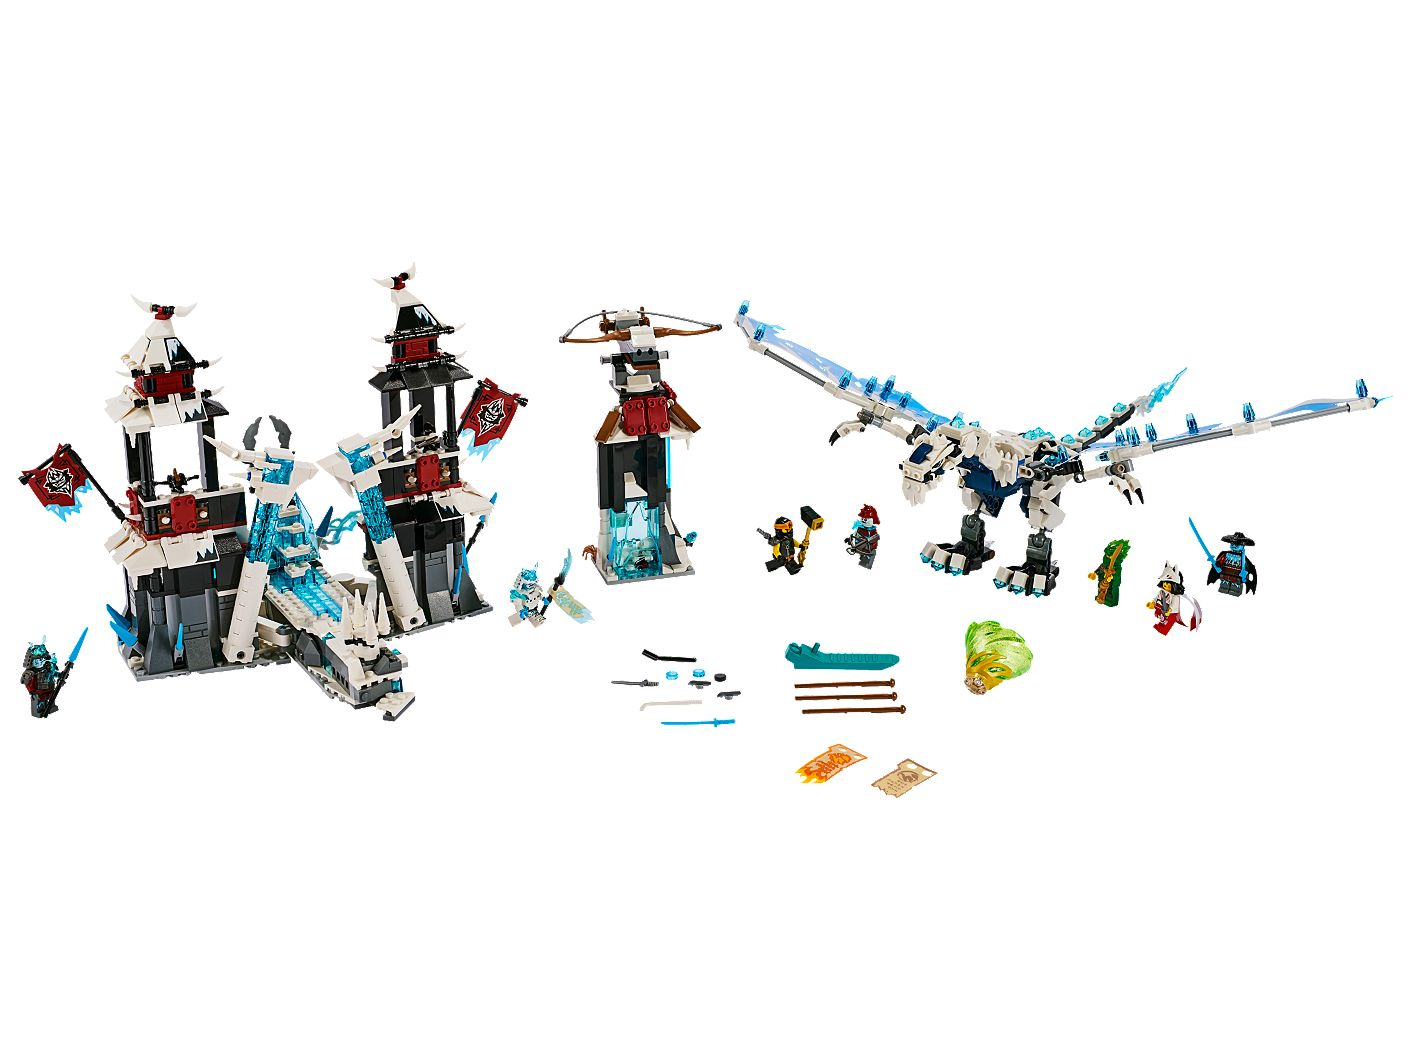 NINJAGO 70678 Castle of the Forsaken Emperor